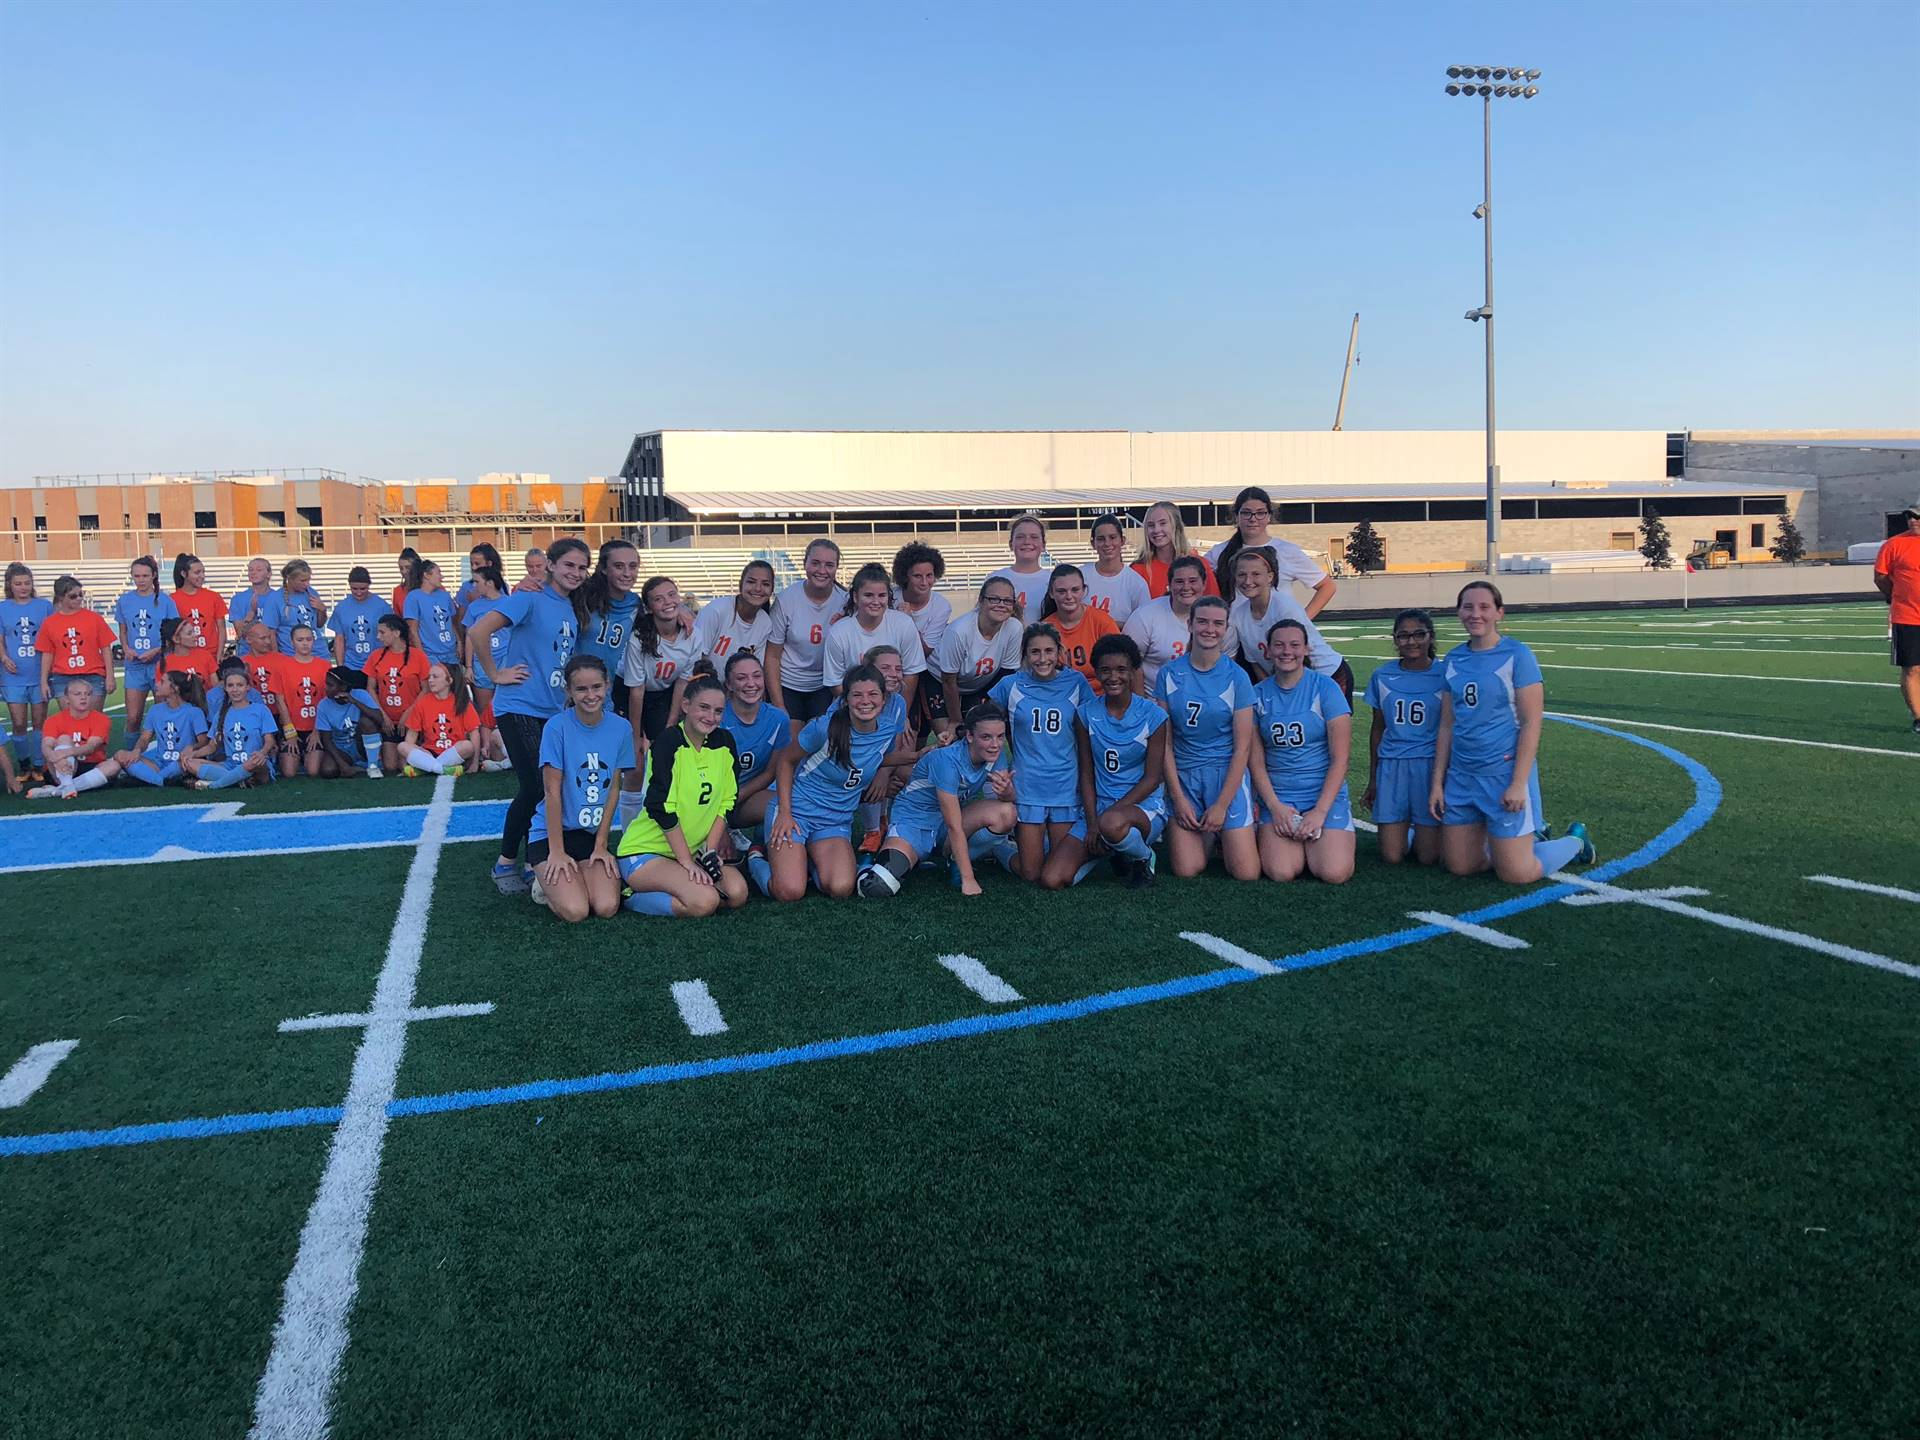 South/North Soccer